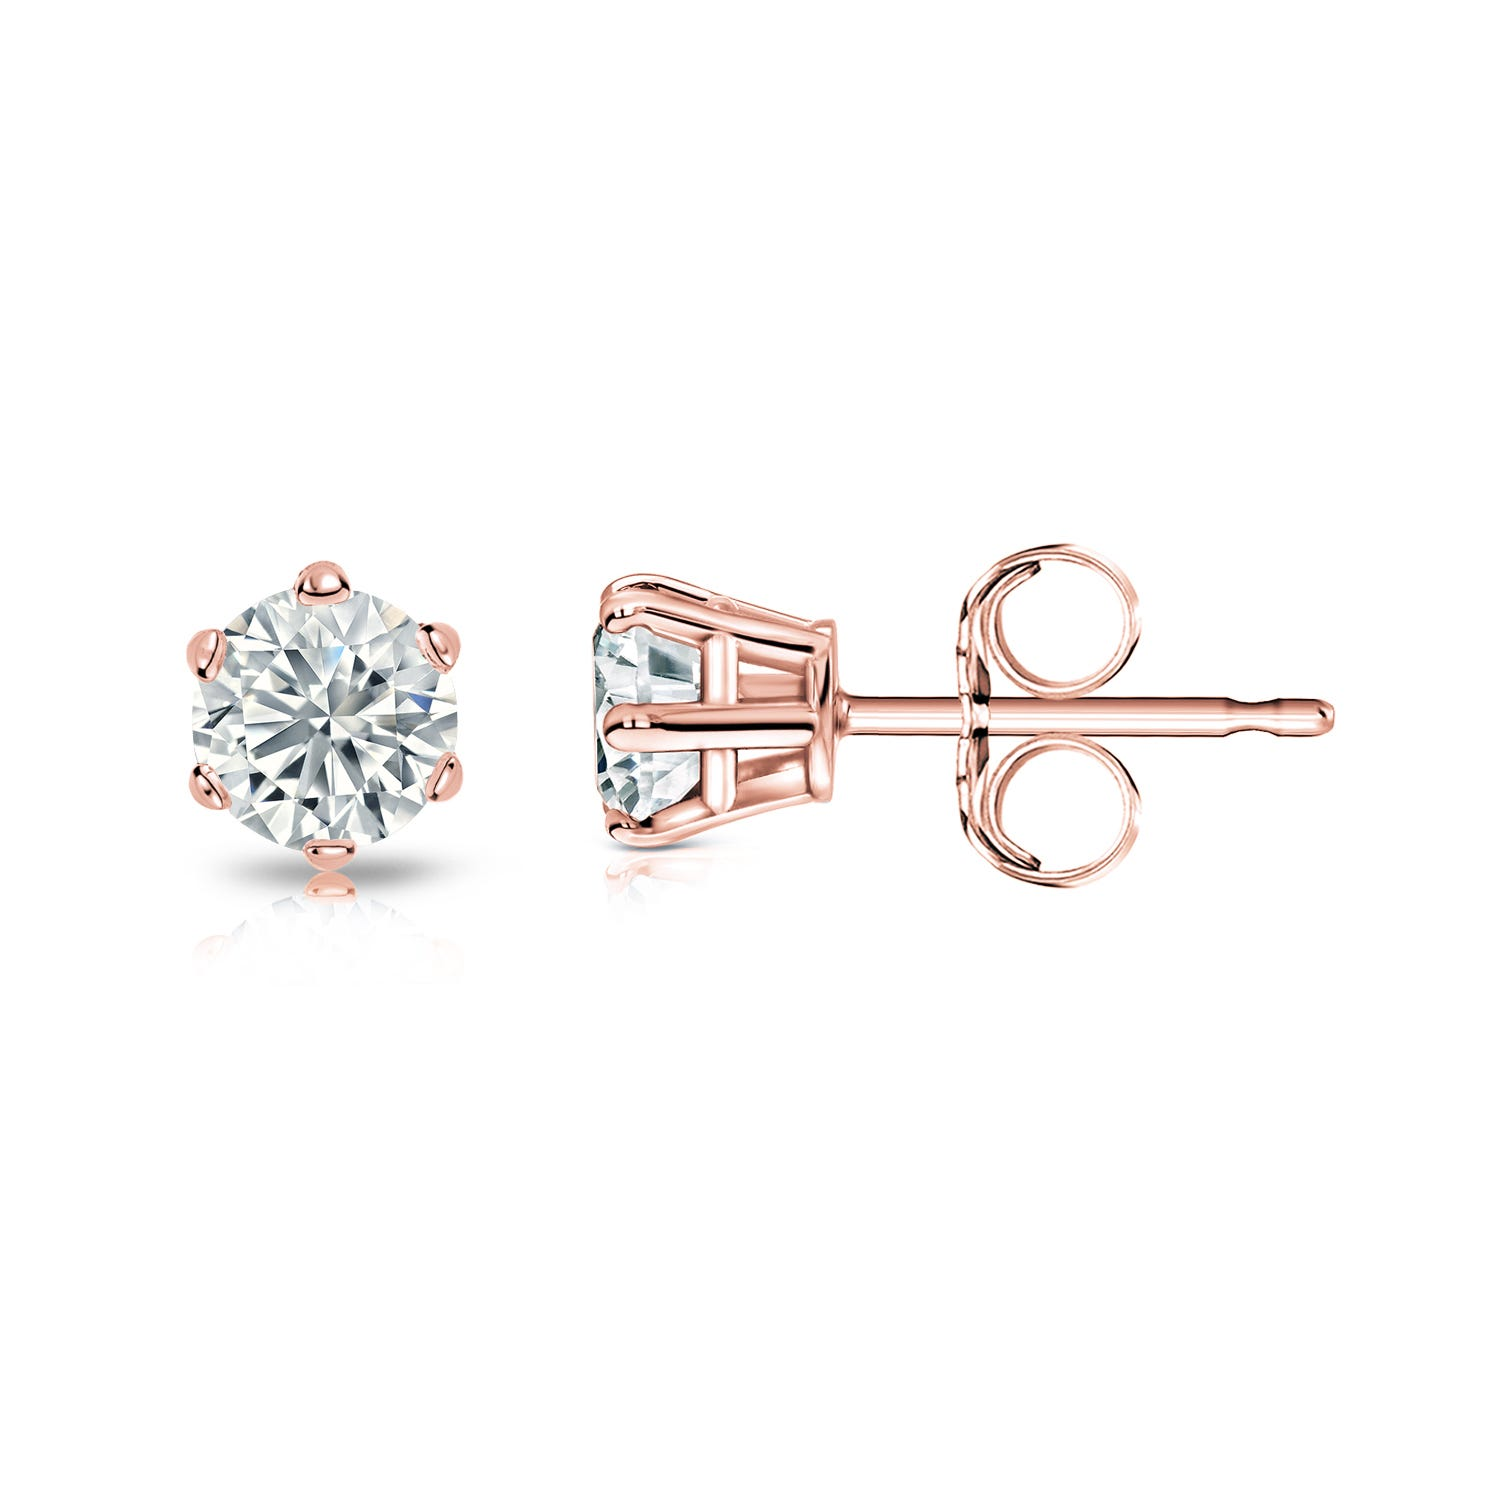 Round Diamond 1/7ctw. (IJ-I1) Solitaire Stud 6-Prong Earrings in 14K Rose Gold